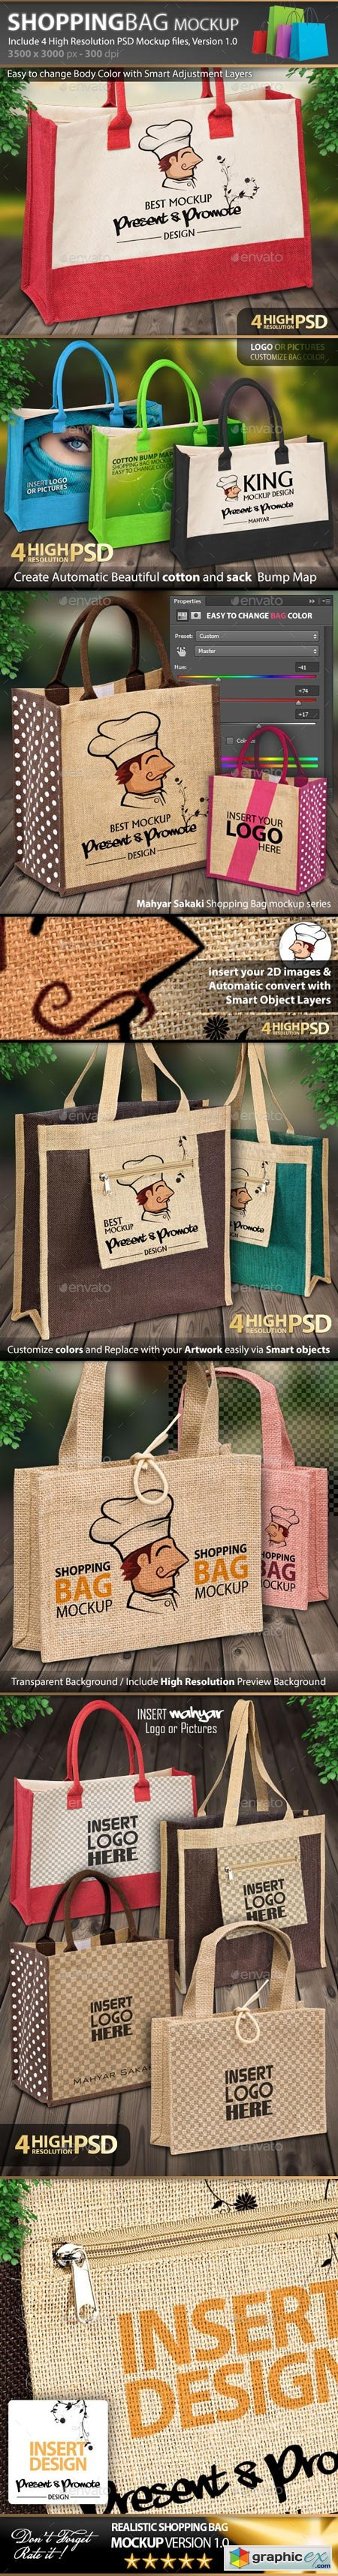 Photorealistic Shopping Bag Mockup V1.0 8929092